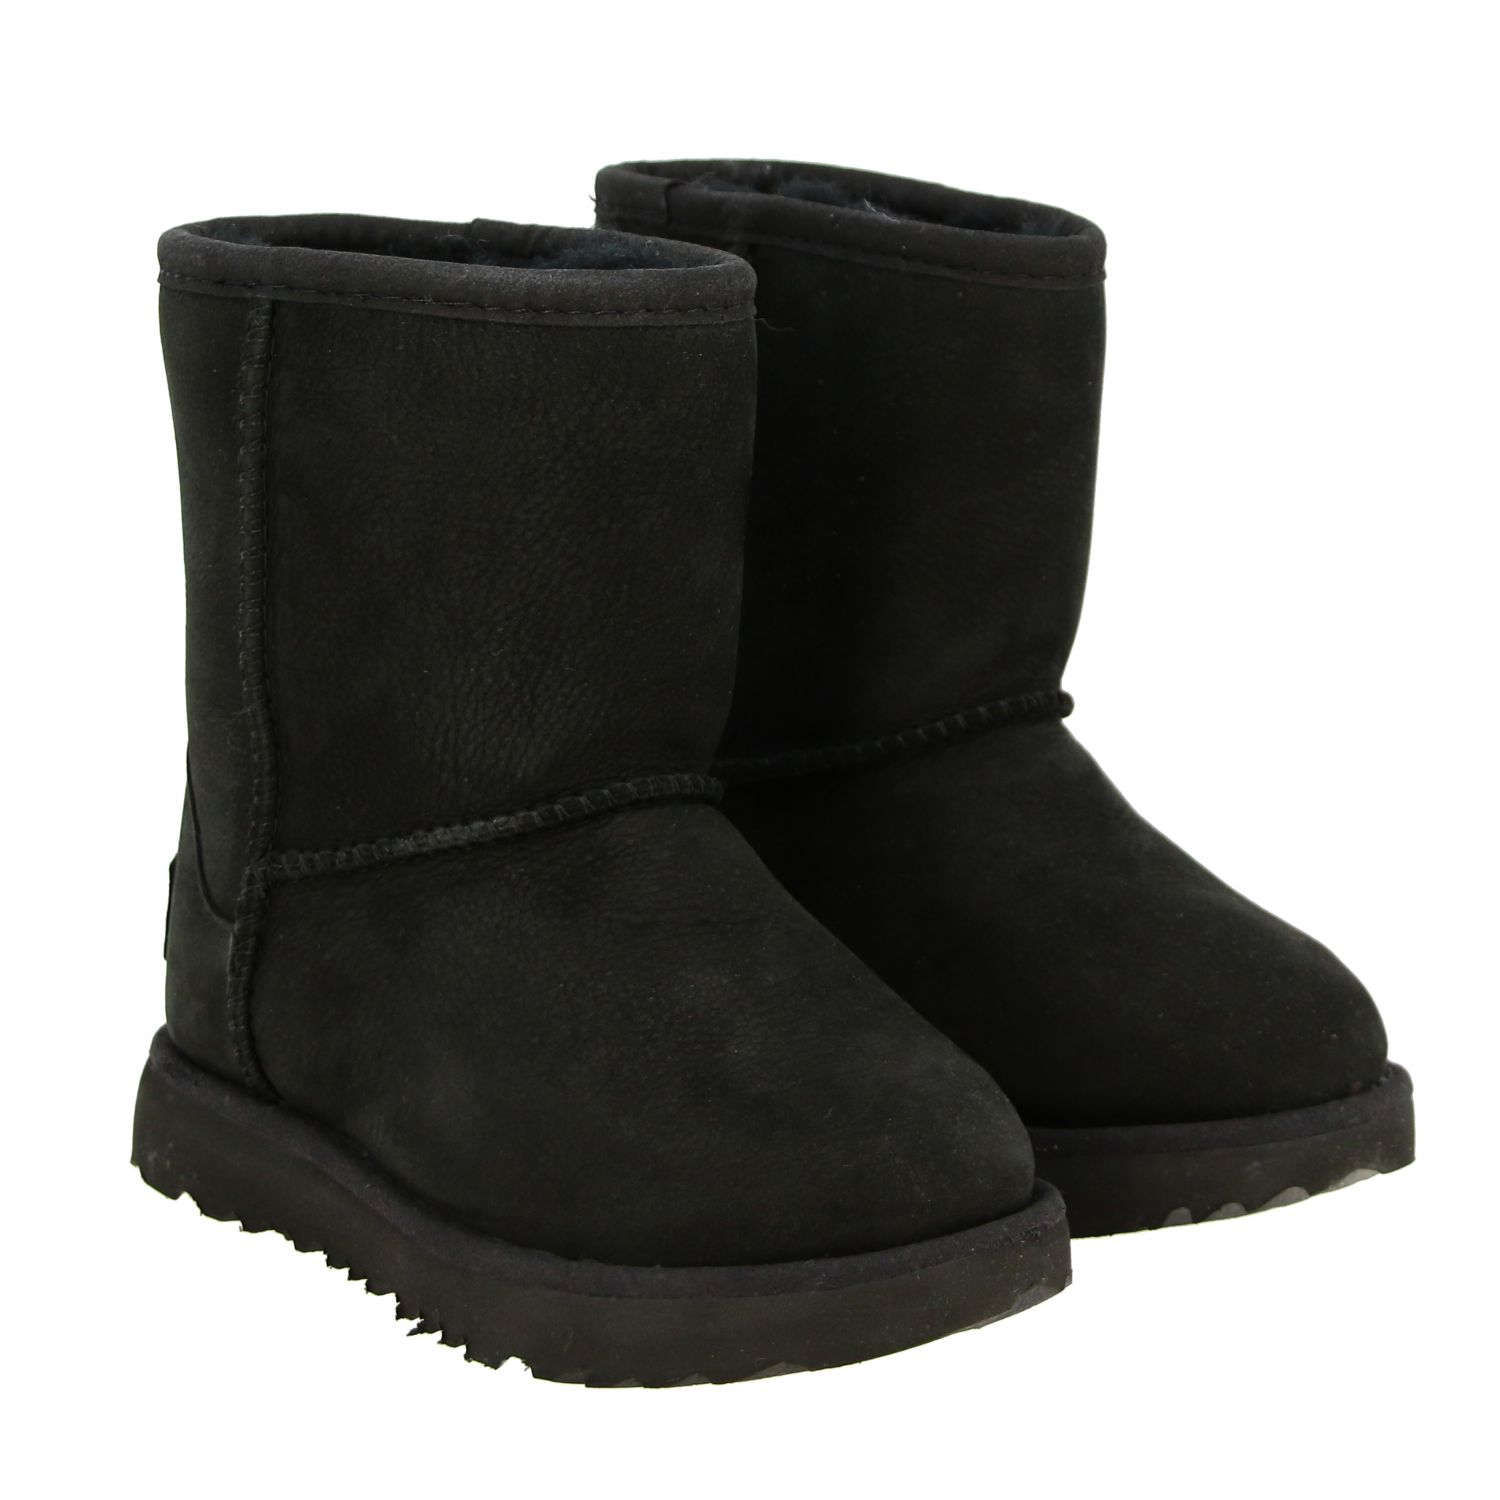 Shoes kids Ugg Australia black 2